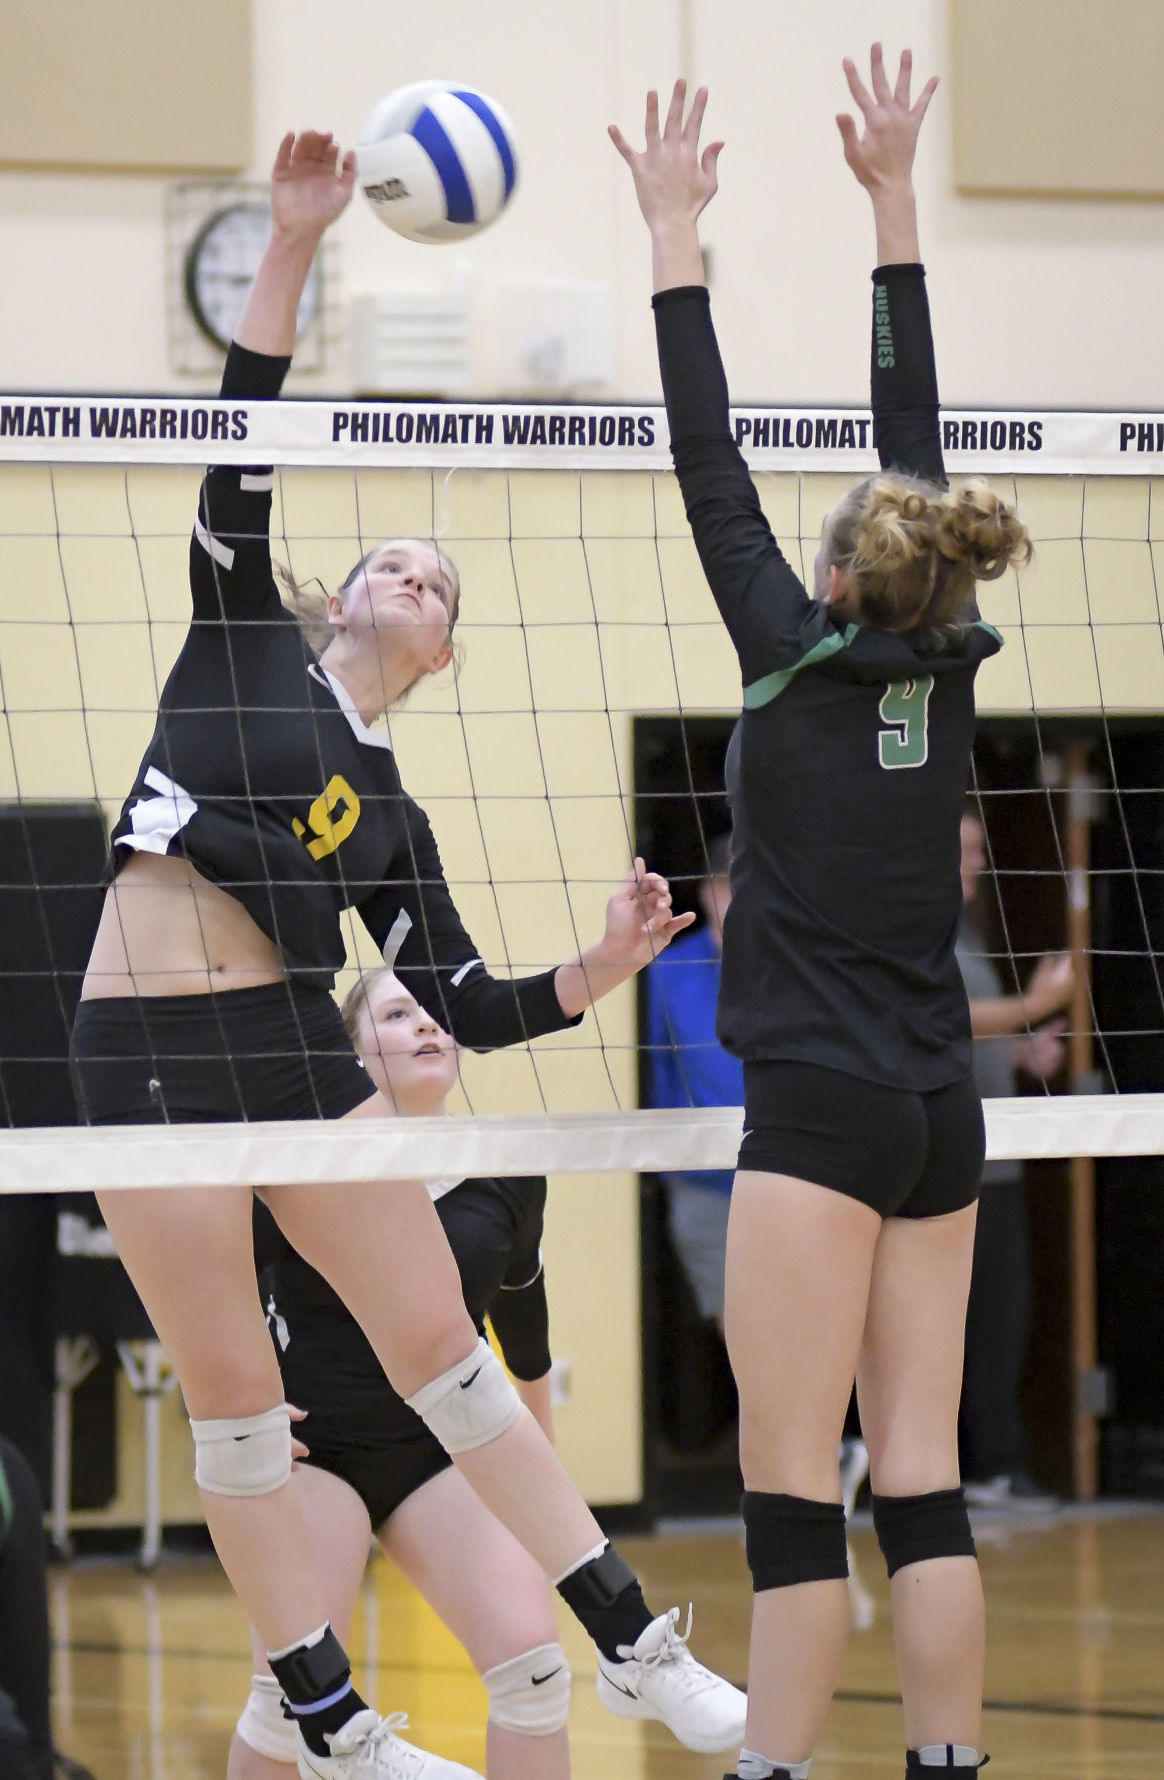 Gallery: Sweet Home at Philomath volleyball 02